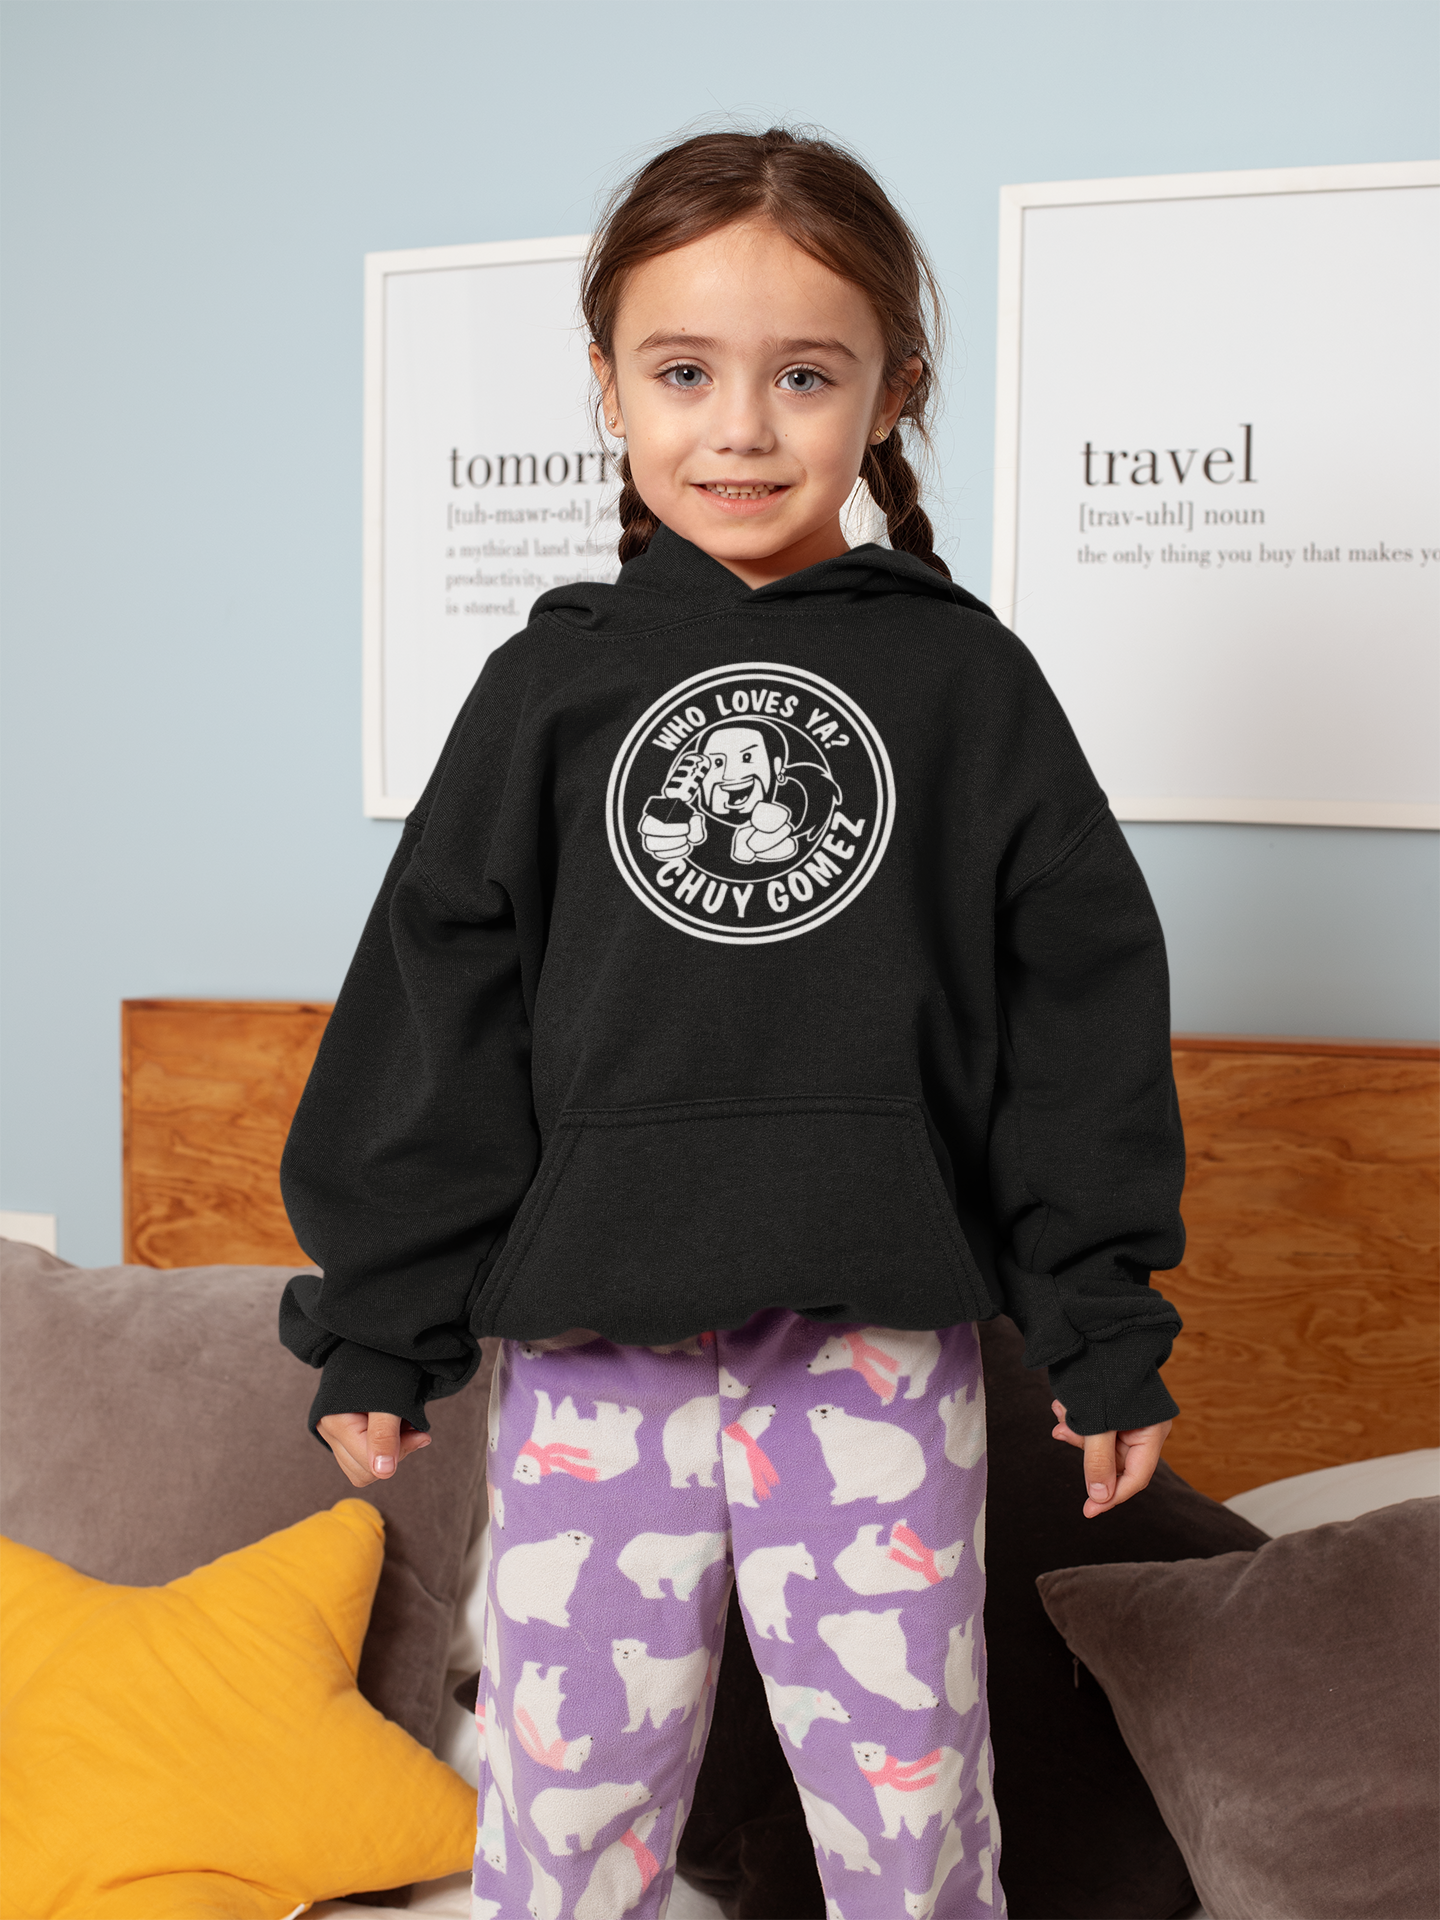 WHO LOVES YOU CHUY? - Kids Hoodie - Beats 4 Hope